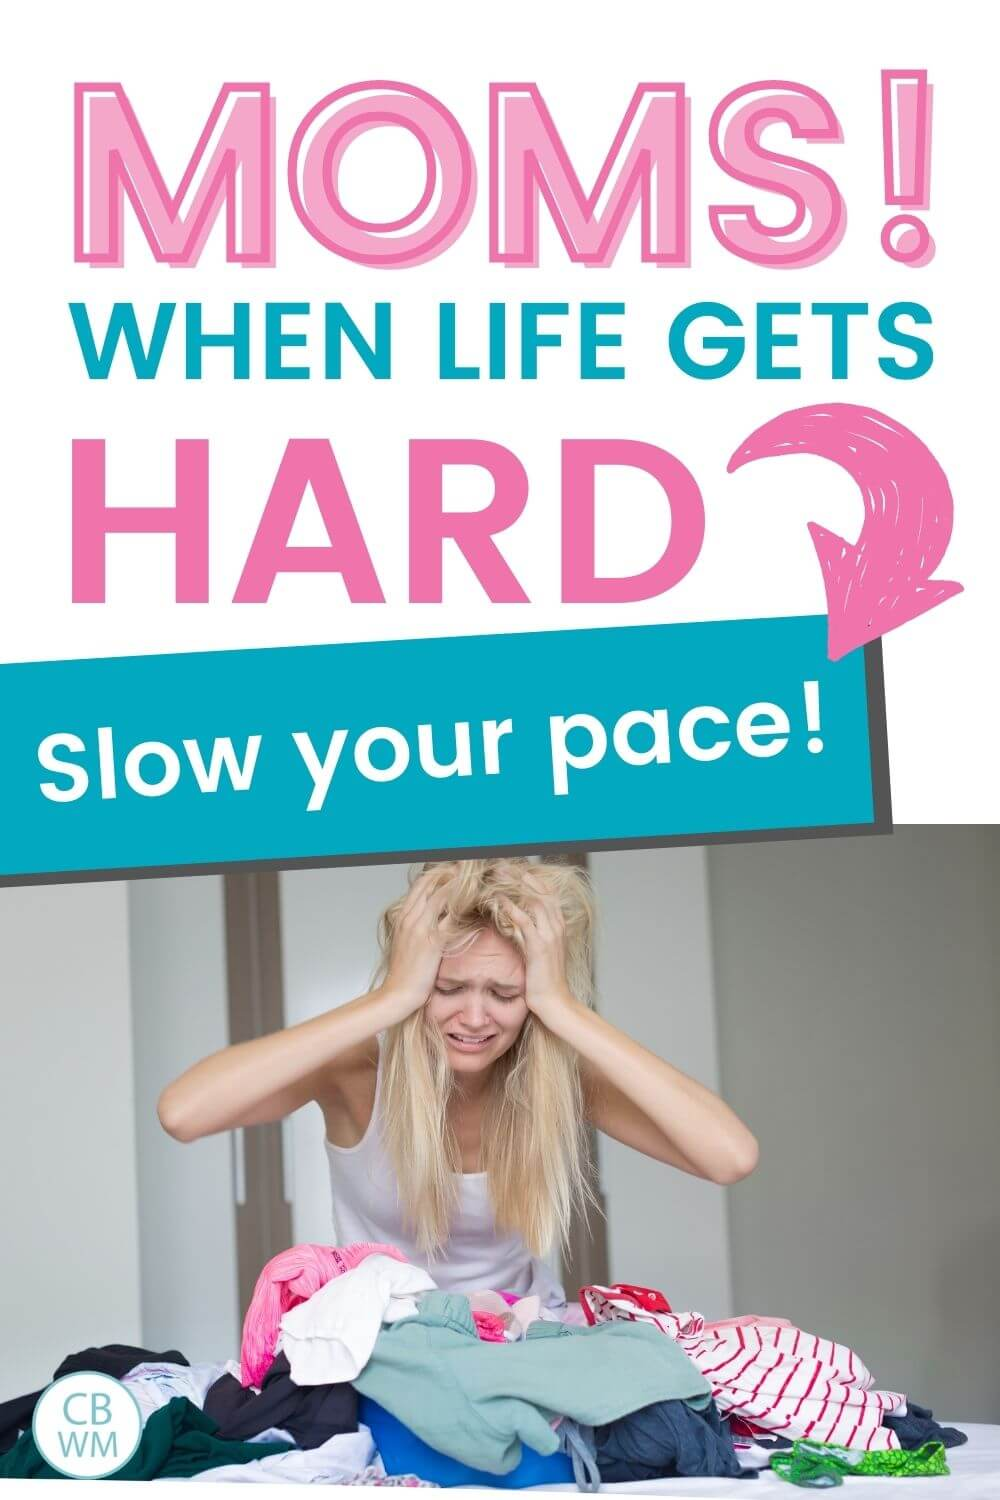 When life gets hard slow the pace